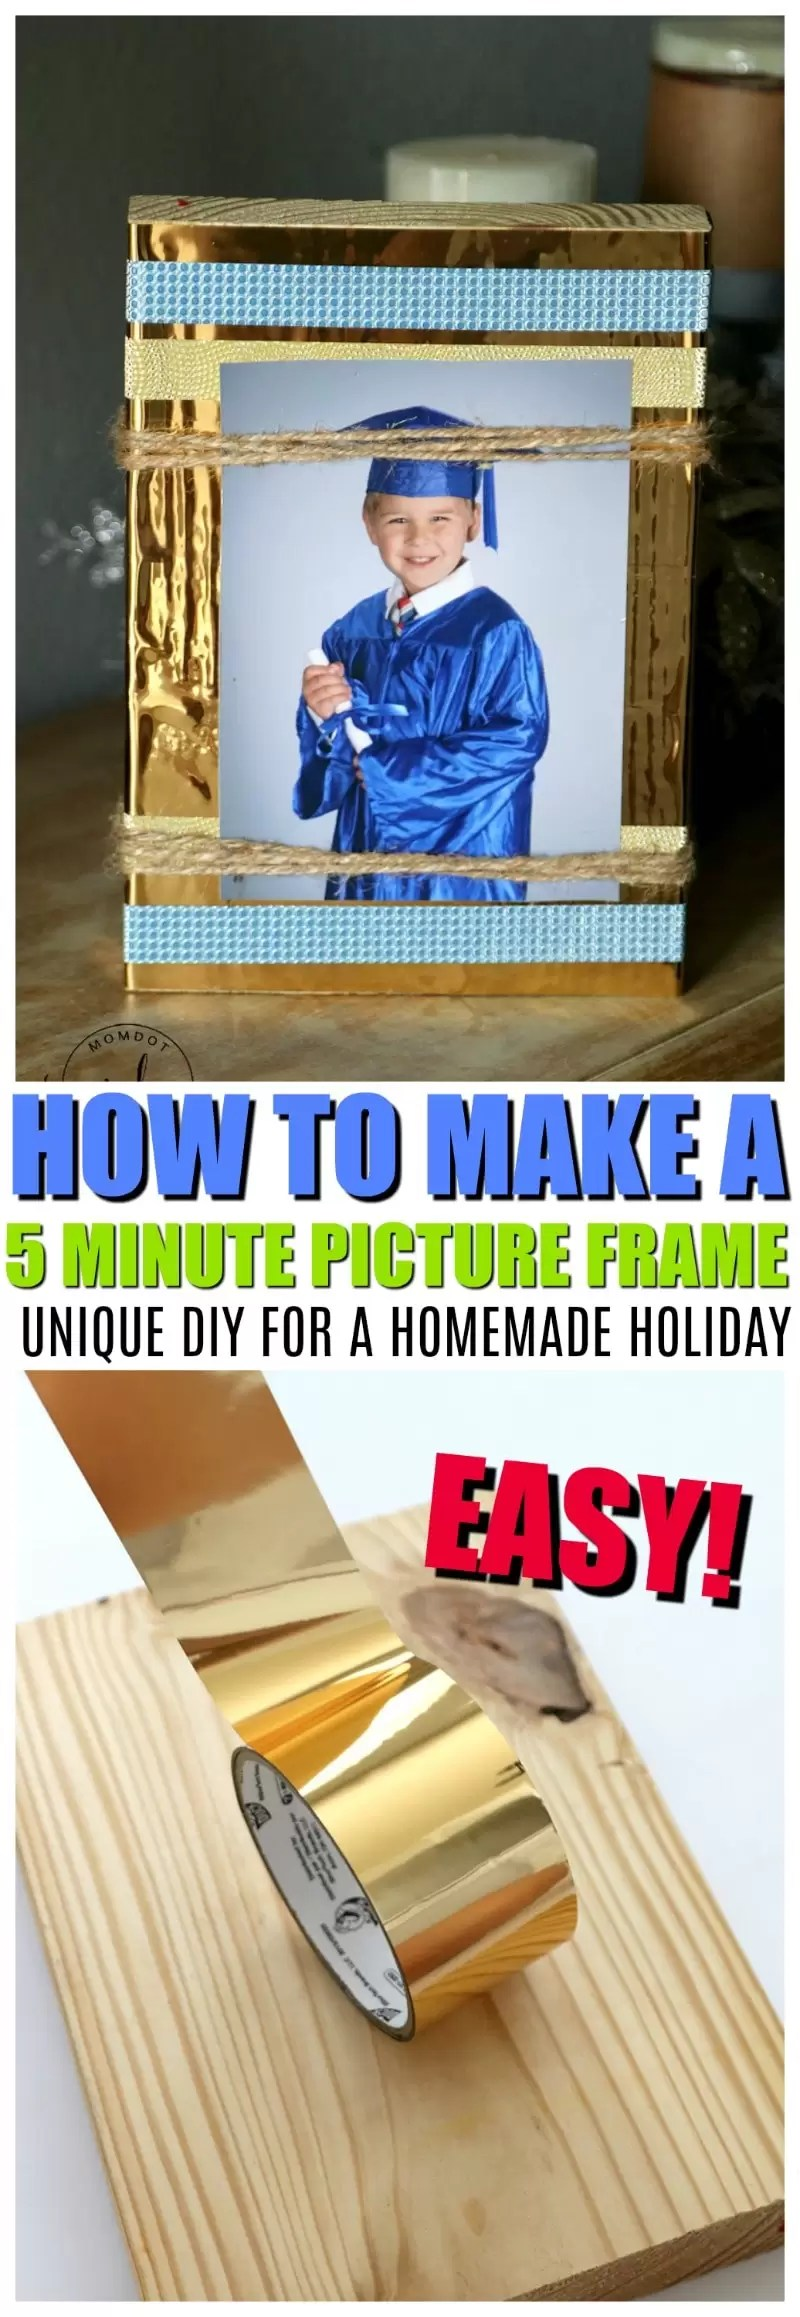 Enamour Homemade Frame How To Make A Frame No No Saw How To Make A Homemade Gifts How To Make A Frame Drum How To Make A Frame Minecraft